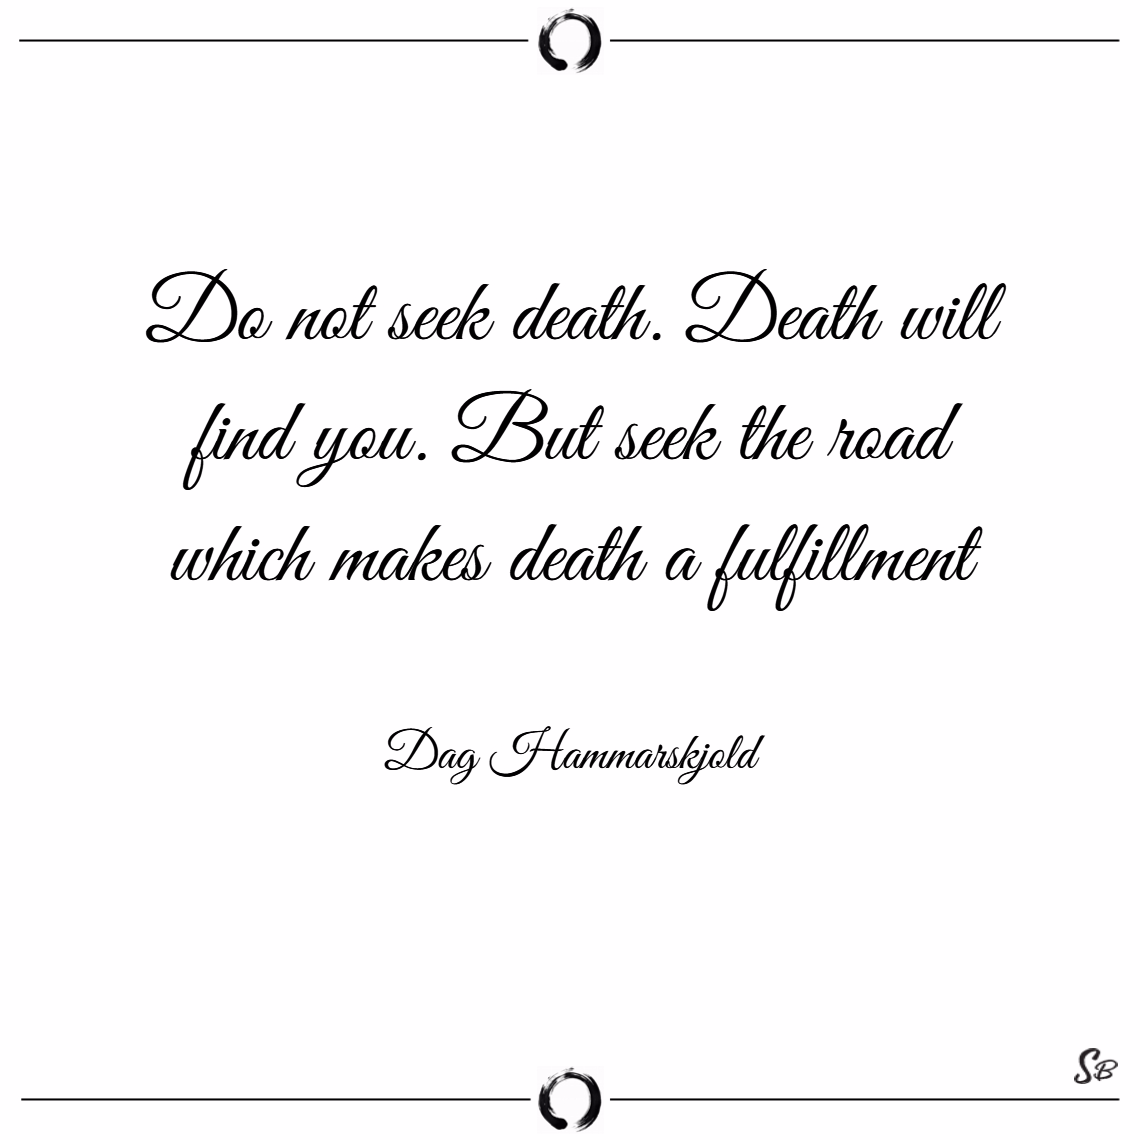 Do not seek death. death will find you. but seek the road which makes death a fulfillment. – dag hammarskjold